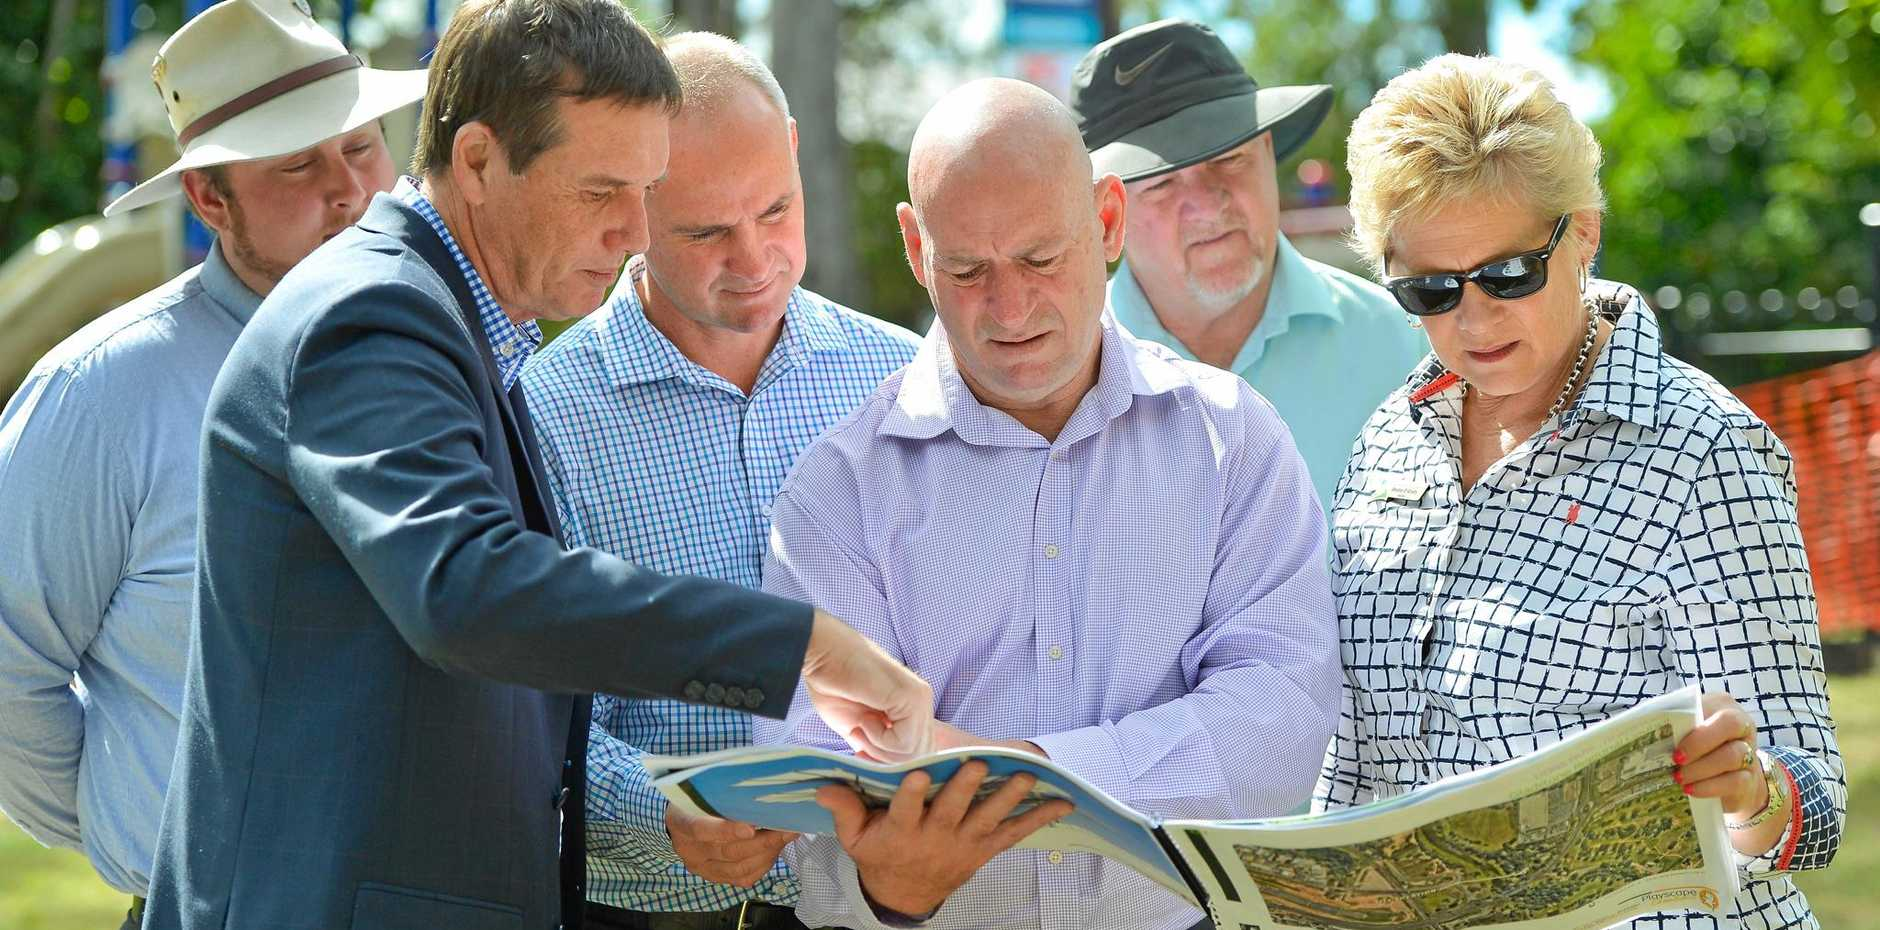 Gladstone MP Glenn Butcher and Minister for State Development Anthony Lynham announce $6 million for Gladstone projects as part of the Works for Queensland program. Pictured with deputy mayor Chris Trevor and councillors Desley O'Gradey, Rick Hansen and Kahn Goodluck.